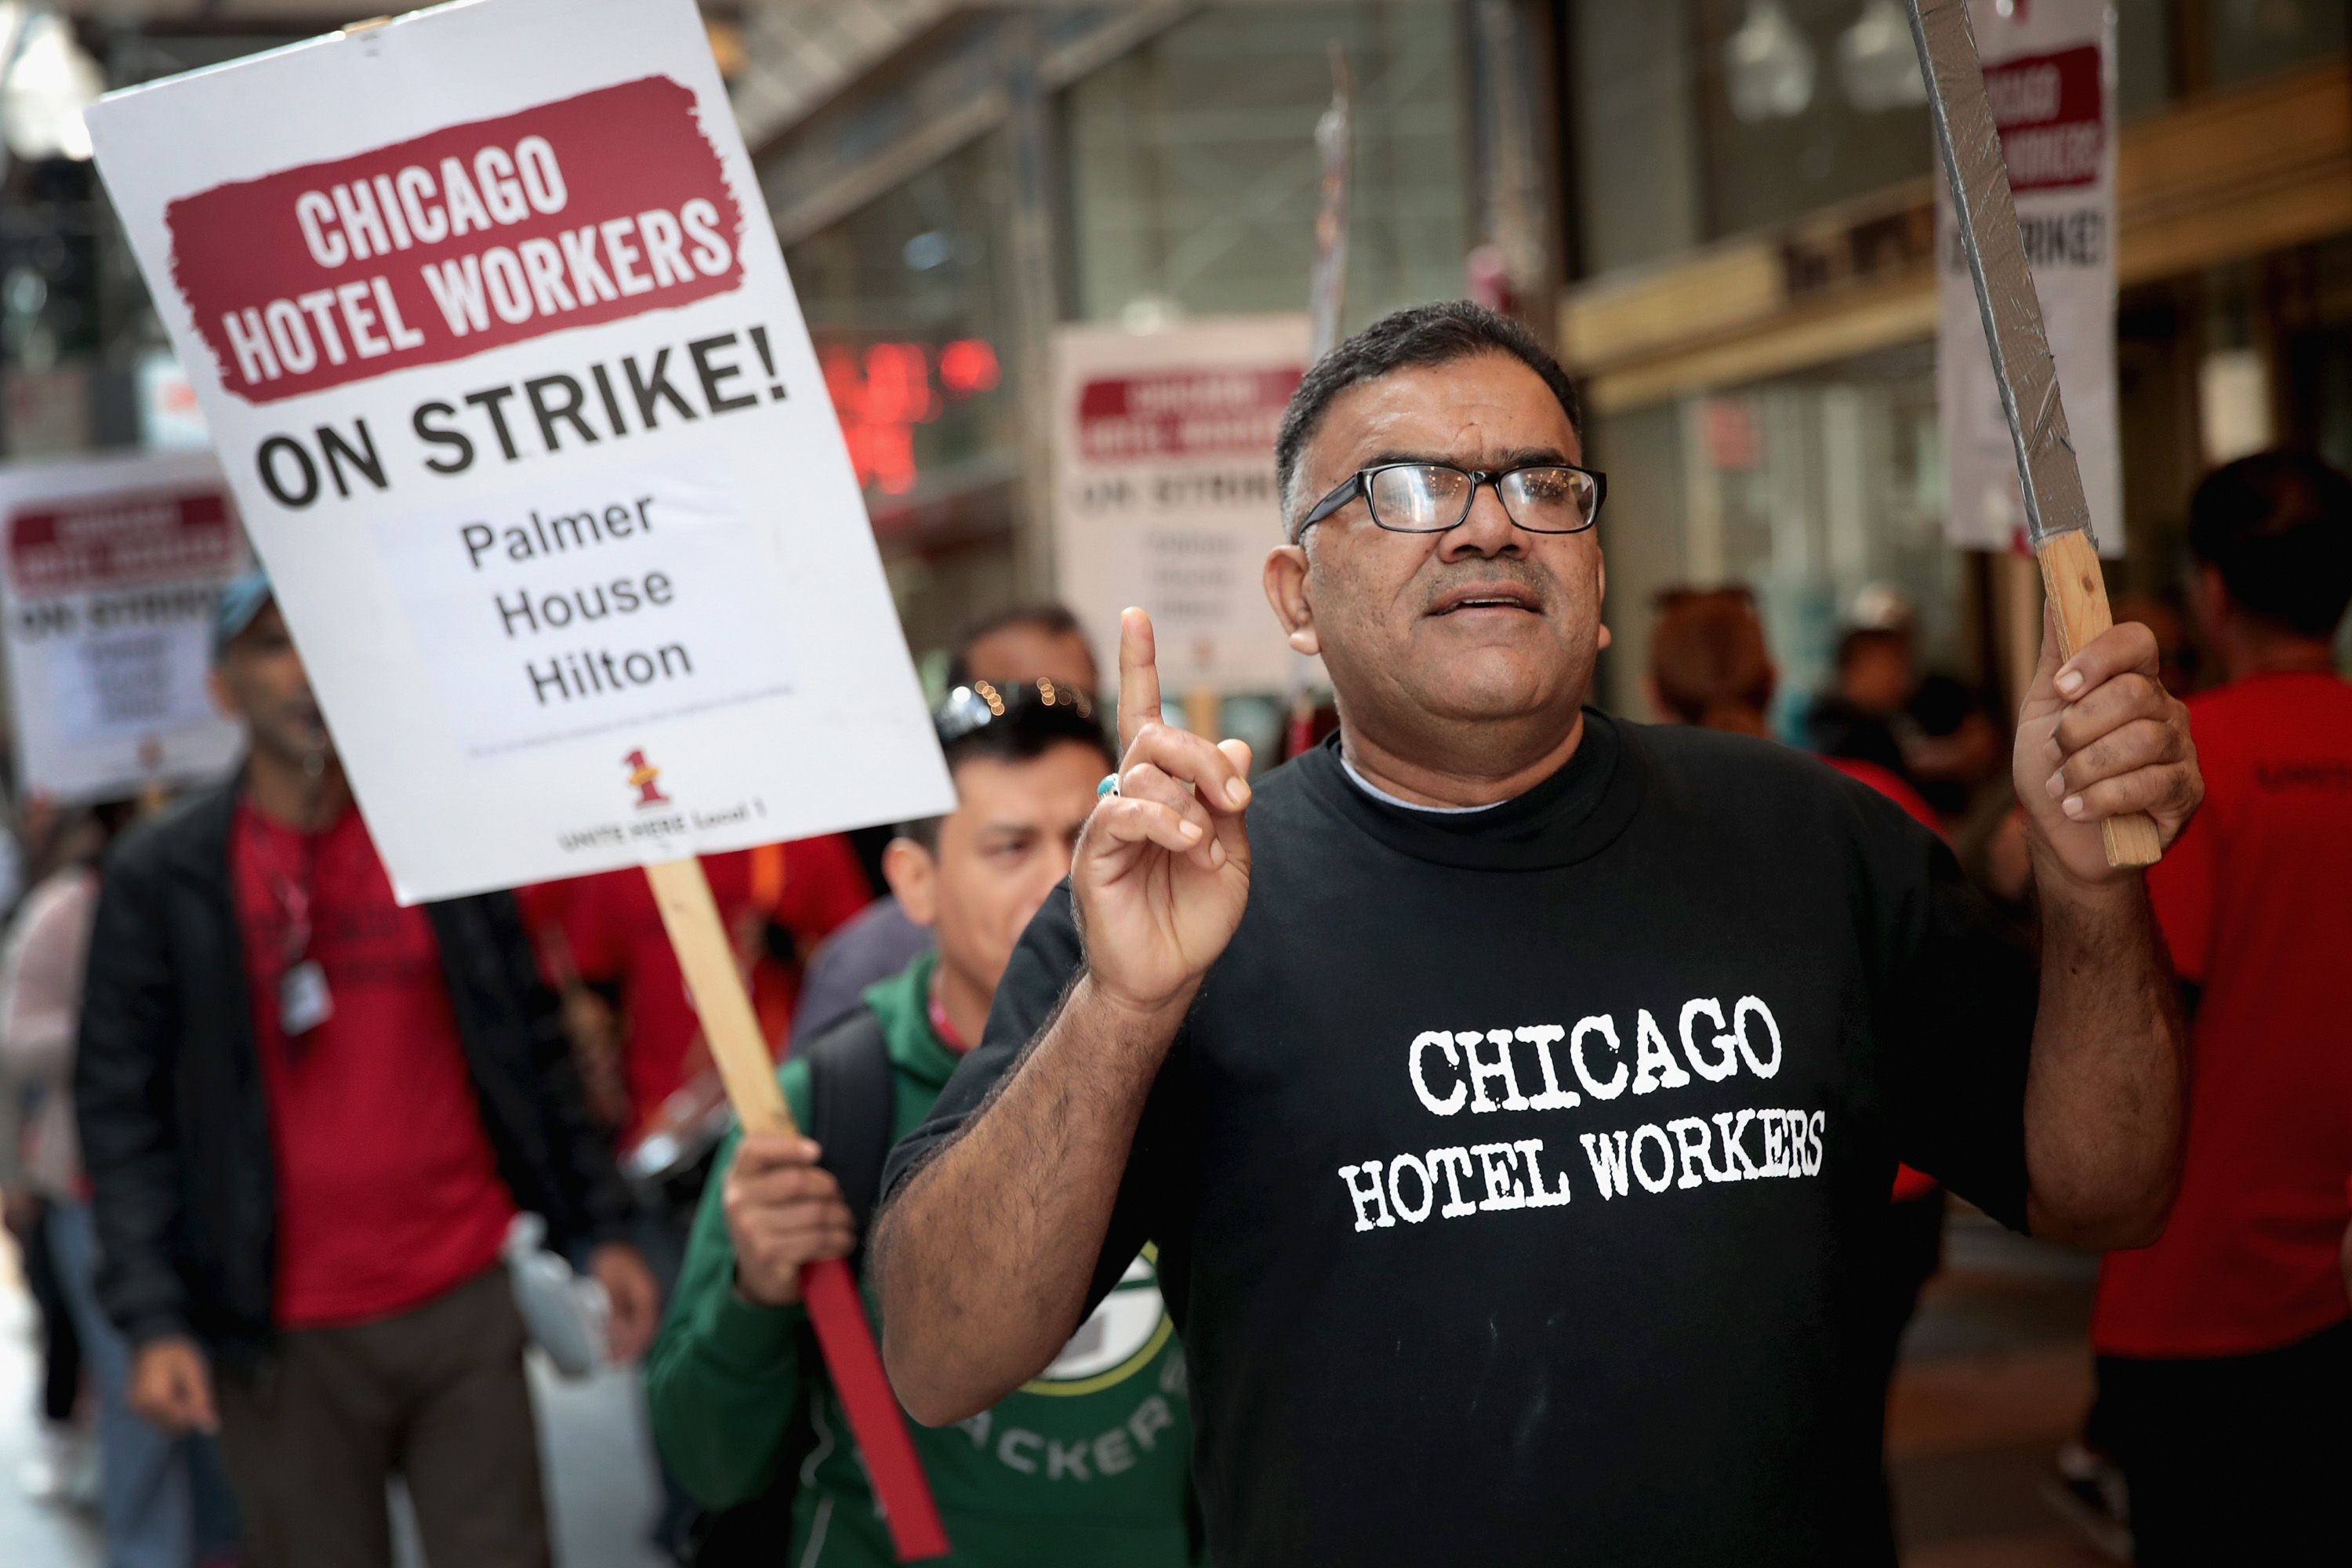 Workers From Over 20 Chicago Hotels Organize Strike